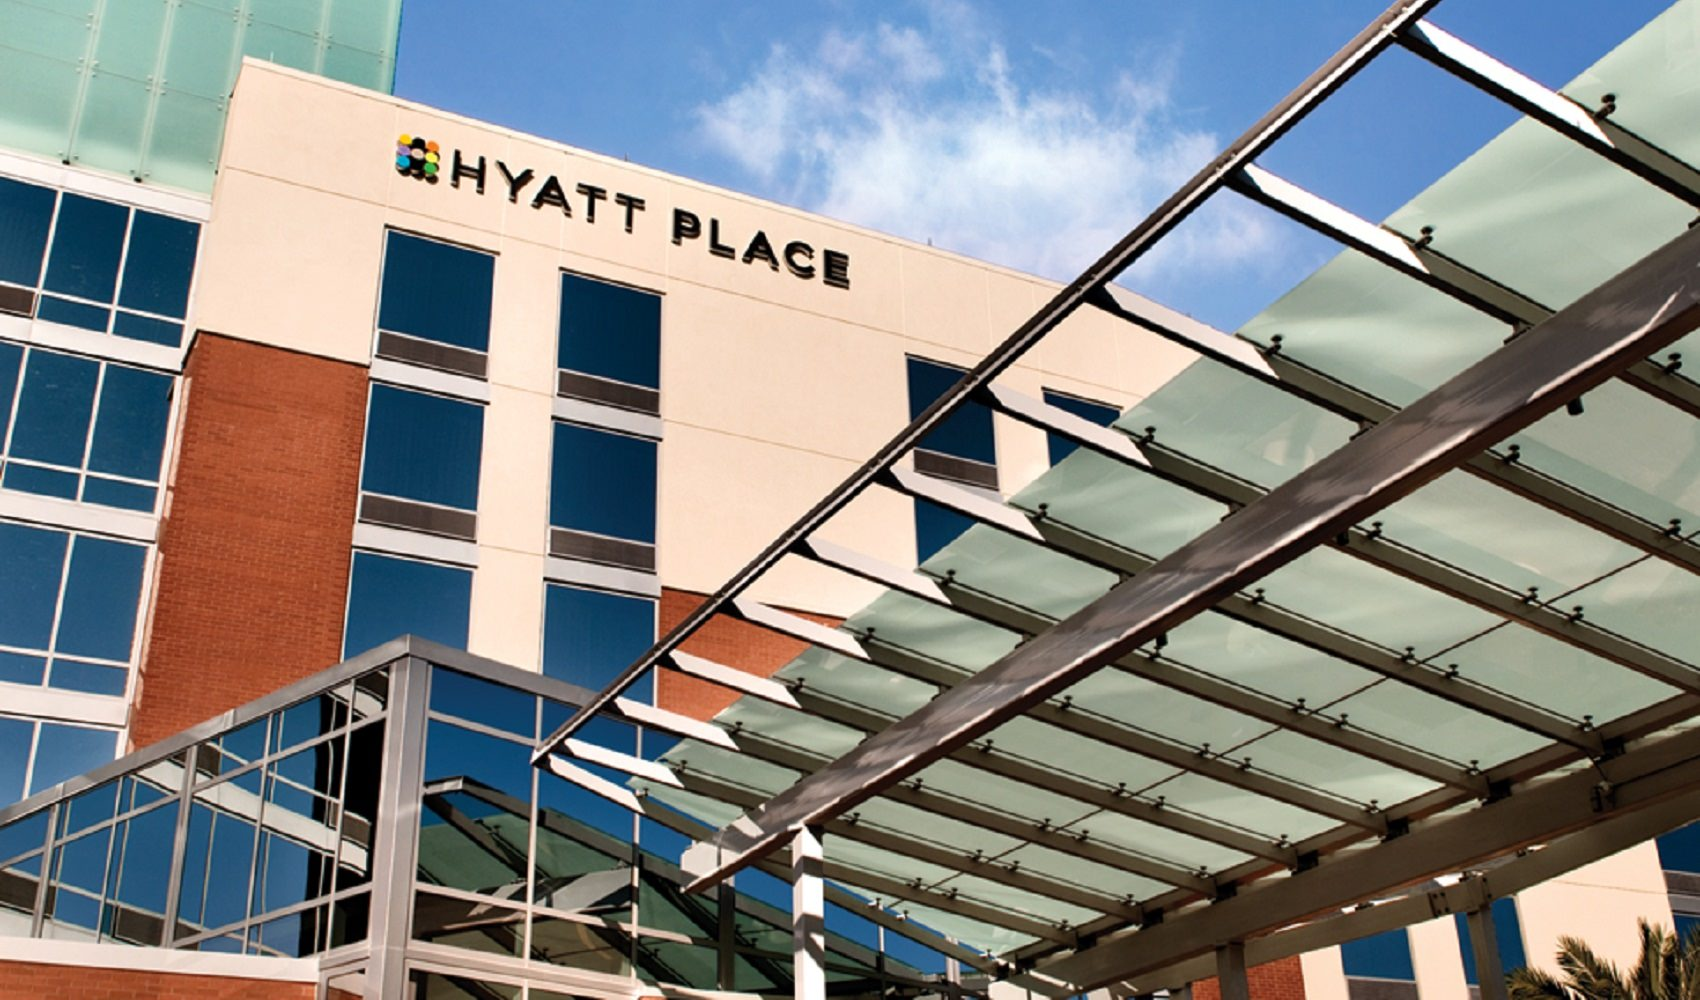 Hyatt Place and Hyatt House